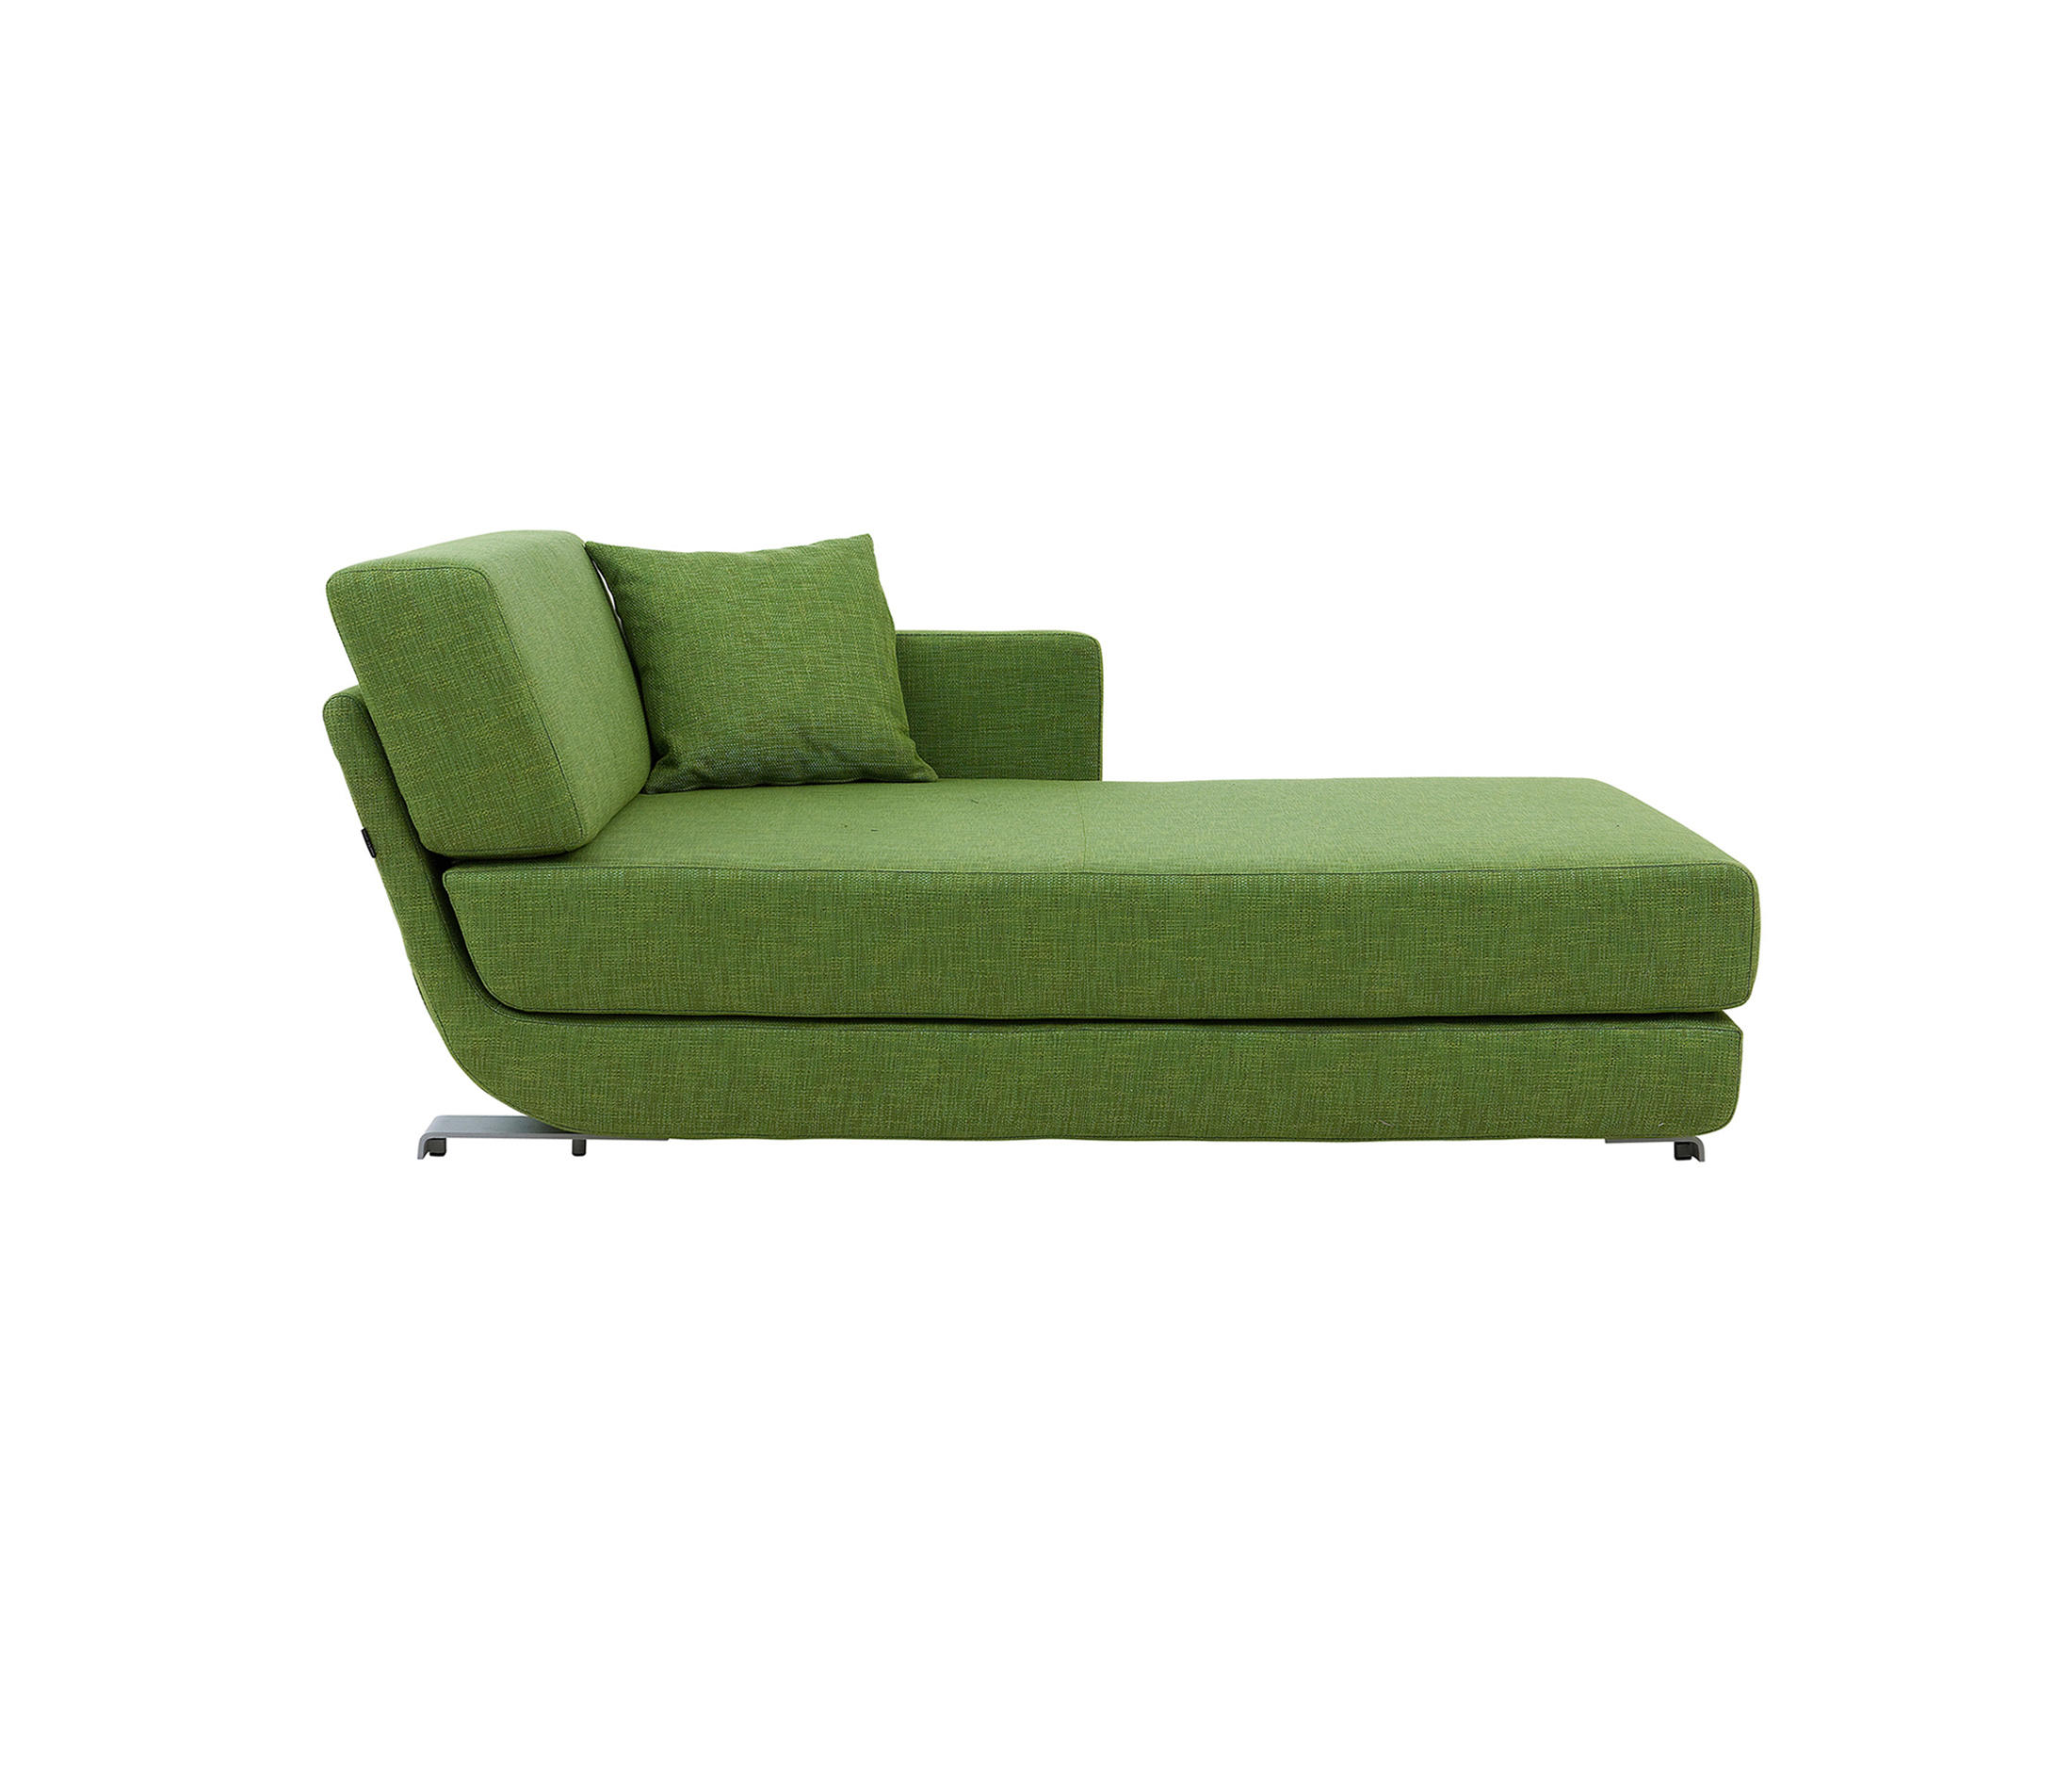 chez long sofa bed aqua sectional lounge chaise beds from softline a s architonic